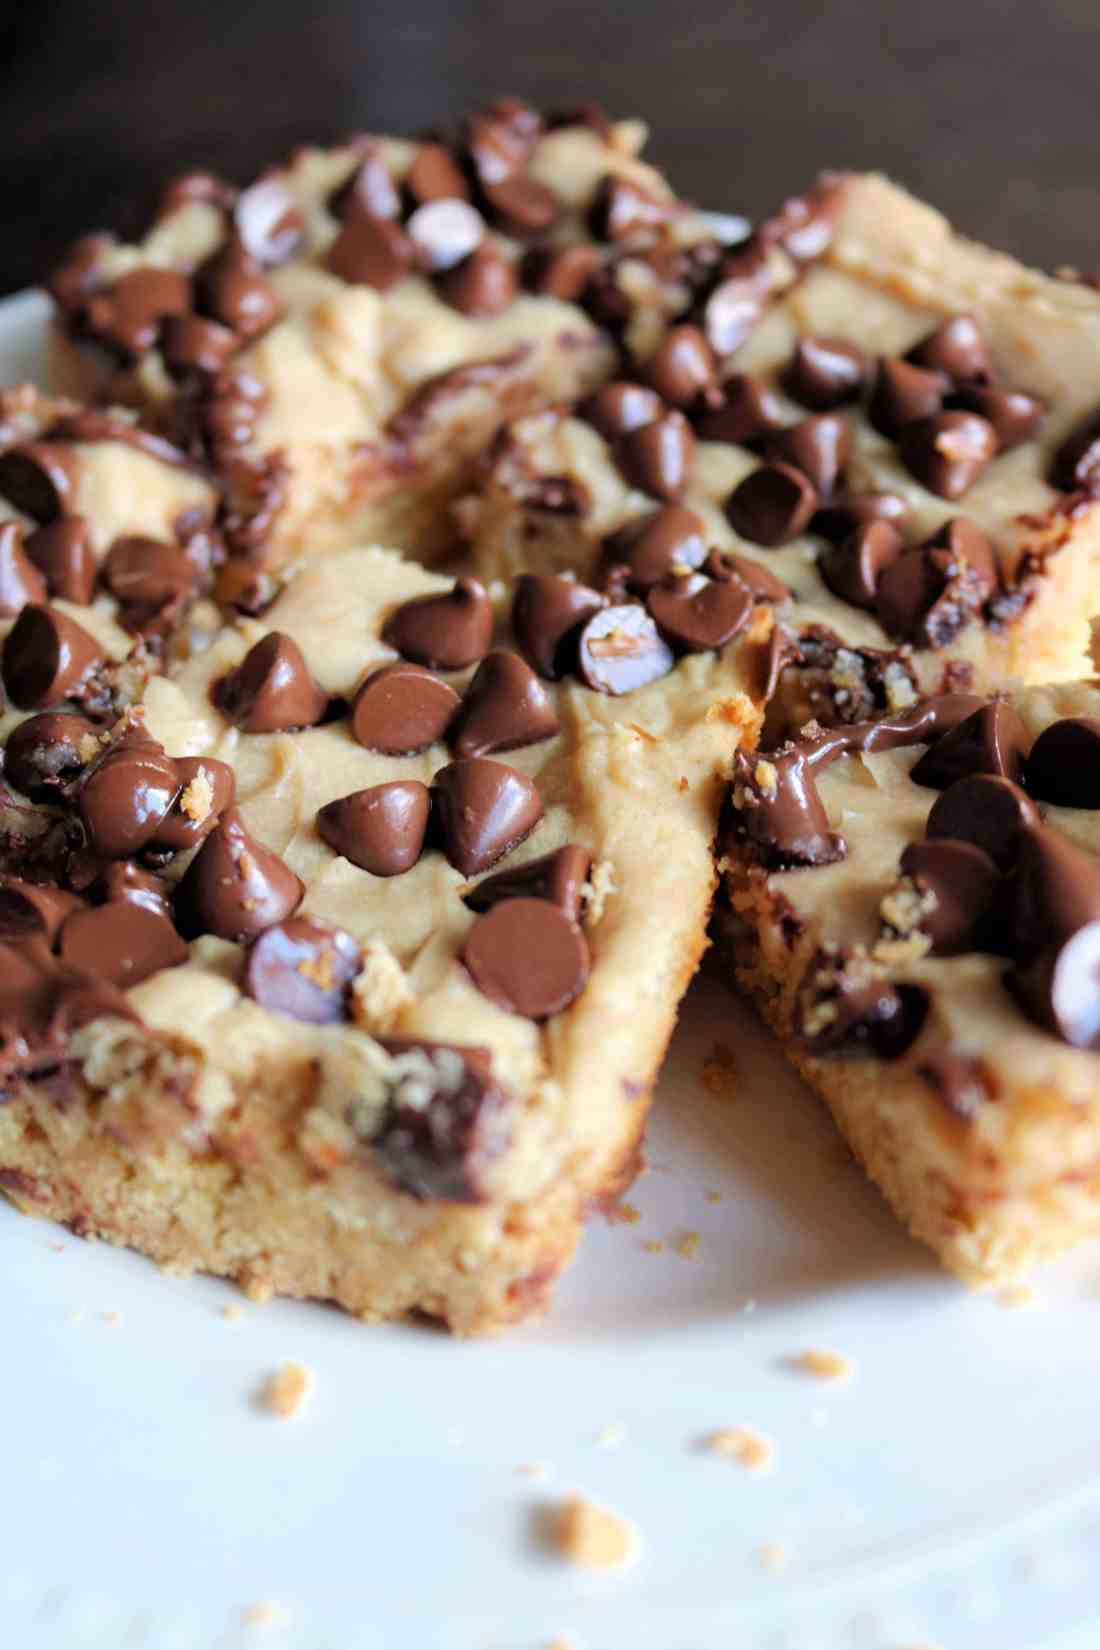 These peanut butter chocolate chip bars are soft, delicious, and packed full of flavor! They bake up in less than 30 minutes with a simple cake mix, creamy peanut butter, cream cheese, and are topped with semi-sweet chocolate chips. #peanutbutterbars #chocolatechipbars #cookiebars